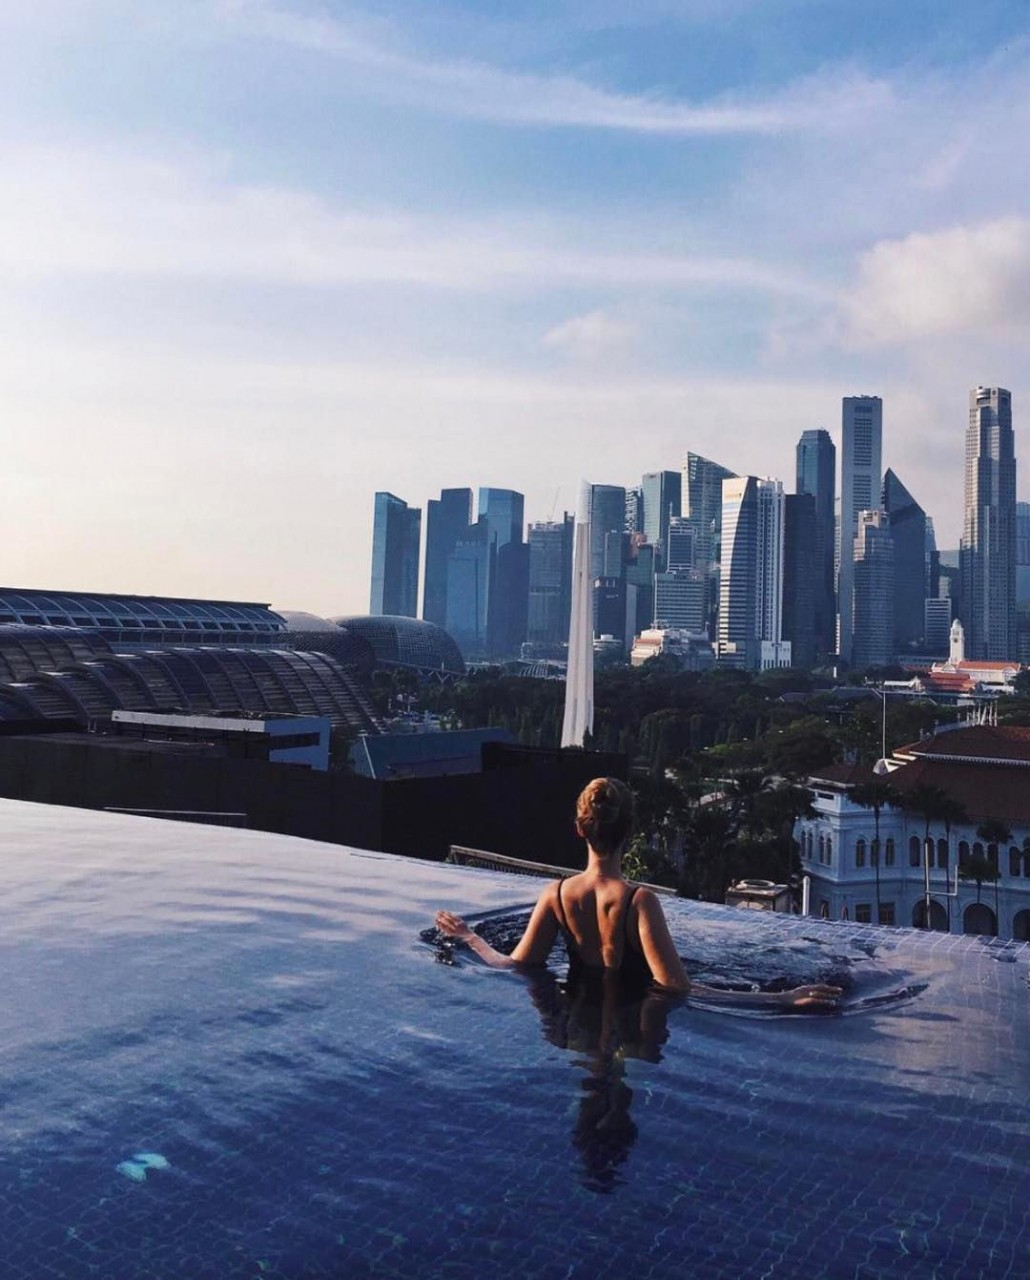 5 hotels in singapore with infinity pools to stay at for under 250 a night thesmartlocal. Black Bedroom Furniture Sets. Home Design Ideas